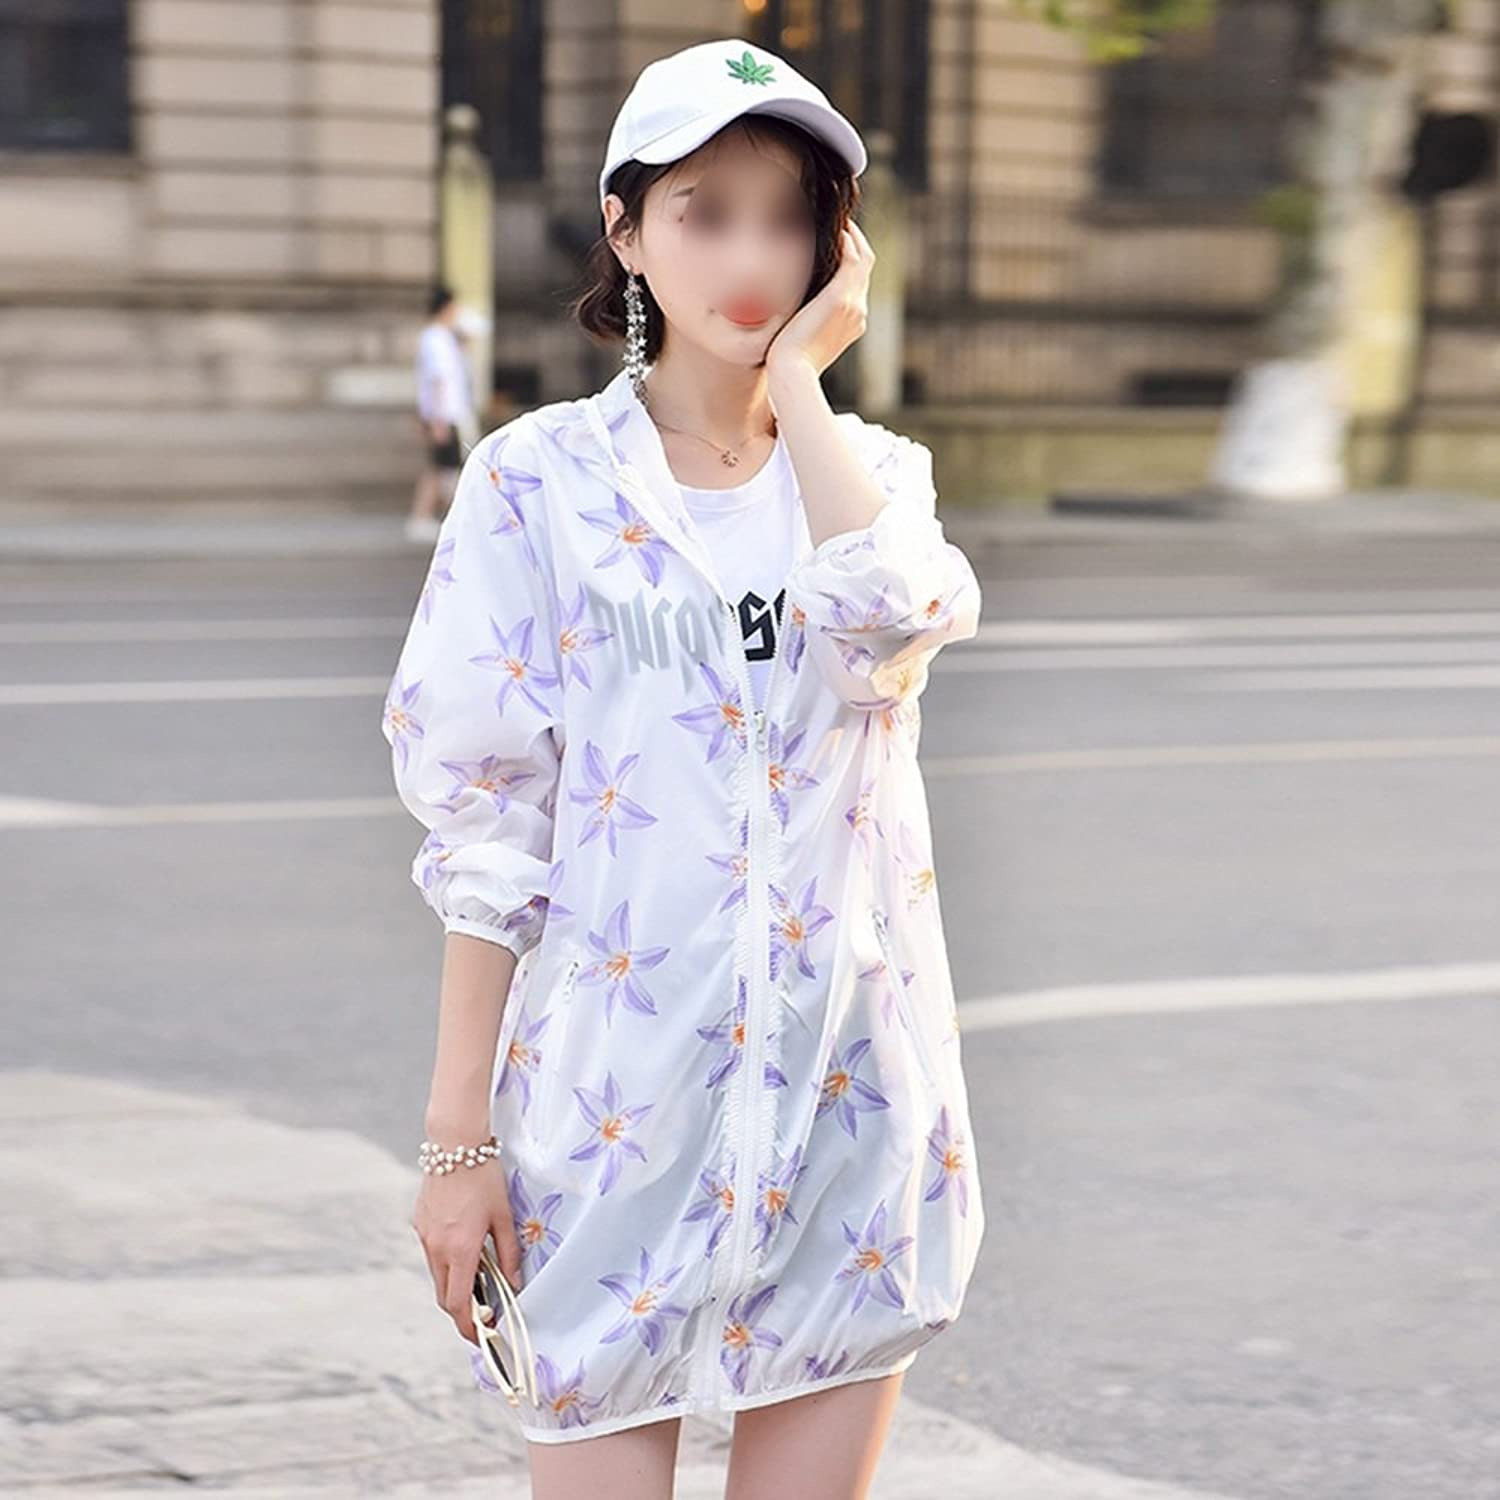 XRXY Female Long Section Printing Sun Predection Clothing Loose Breathable Casual Sunscreen Cardigan UltraThin Simple Office Air Conditioning Shawl (Size   XL)